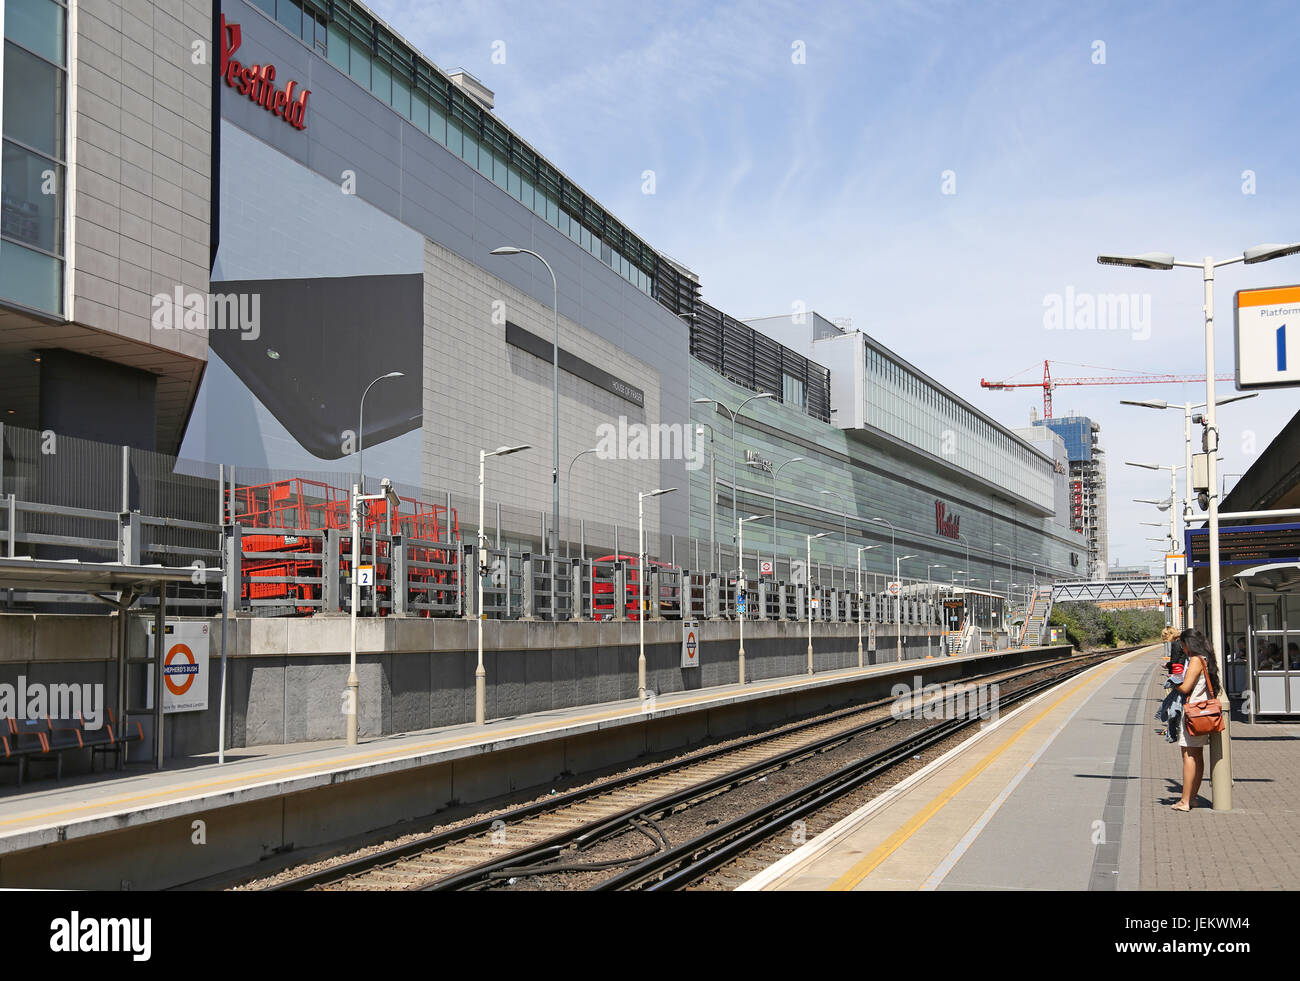 The newly constructed London Overground station at Shepherds Bush station, next to the Westfield Shopping centre - Stock Image